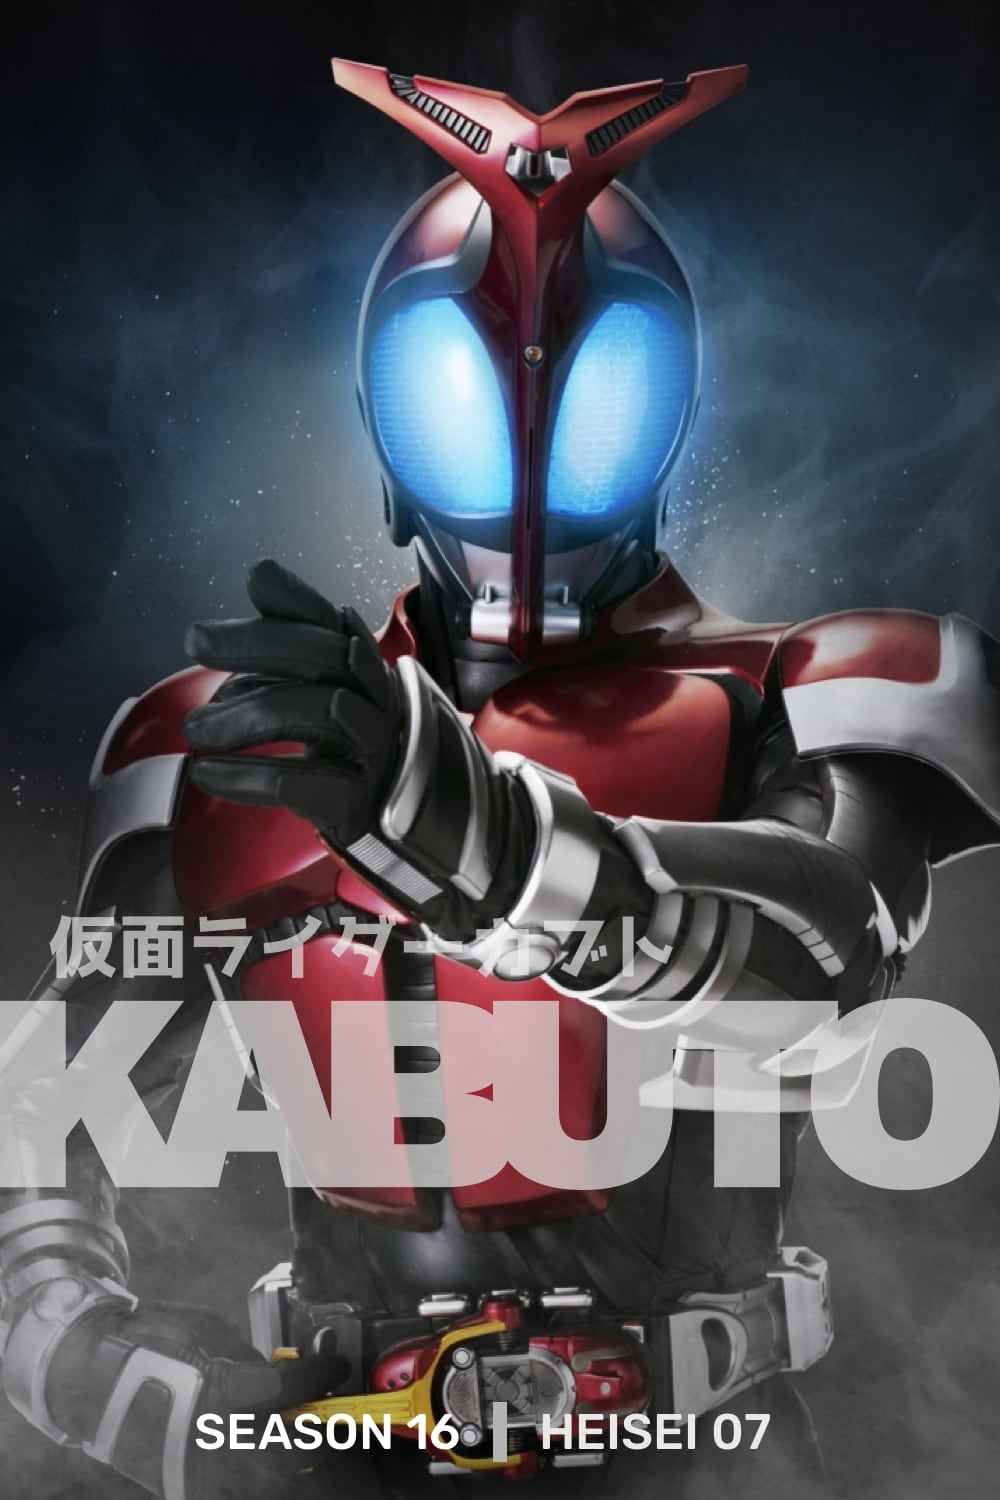 Kamen Rider - Season 21 Episode 2 : Greed, Ice Candy, Present Season 16